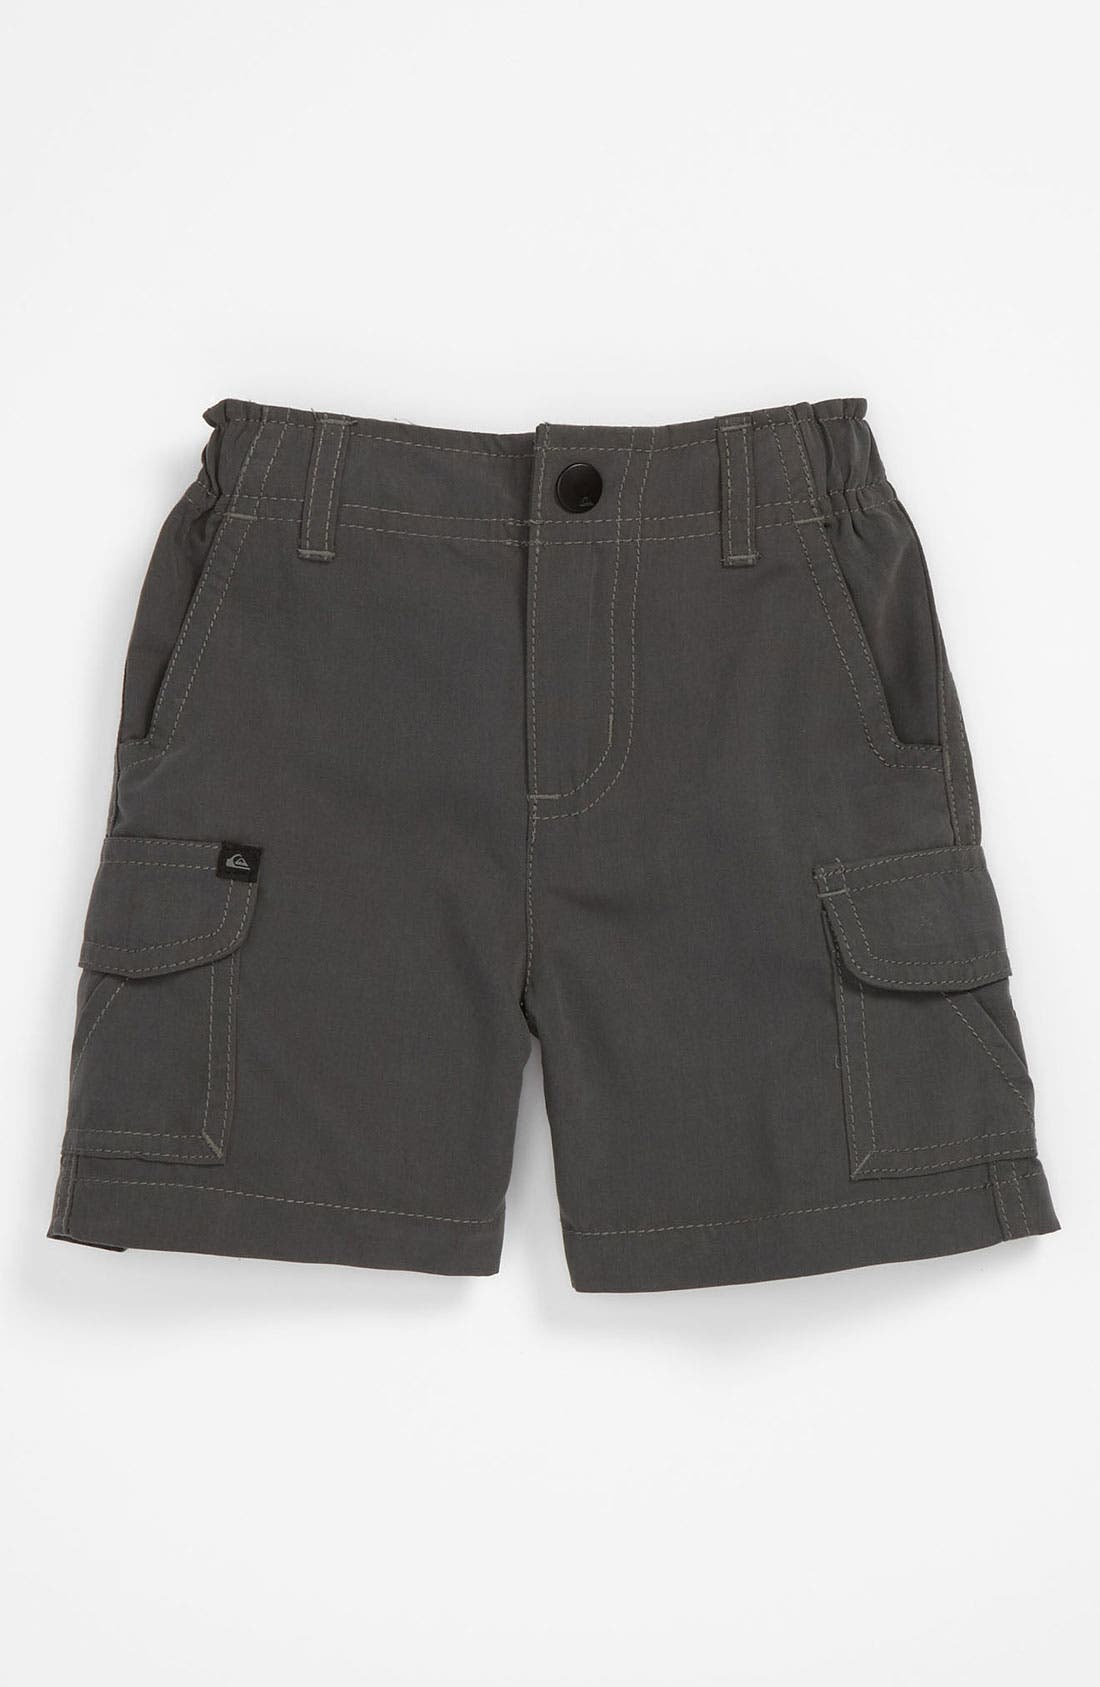 Alternate Image 1 Selected - Quiksilver 'Phofilled' Shorts (Toddler)